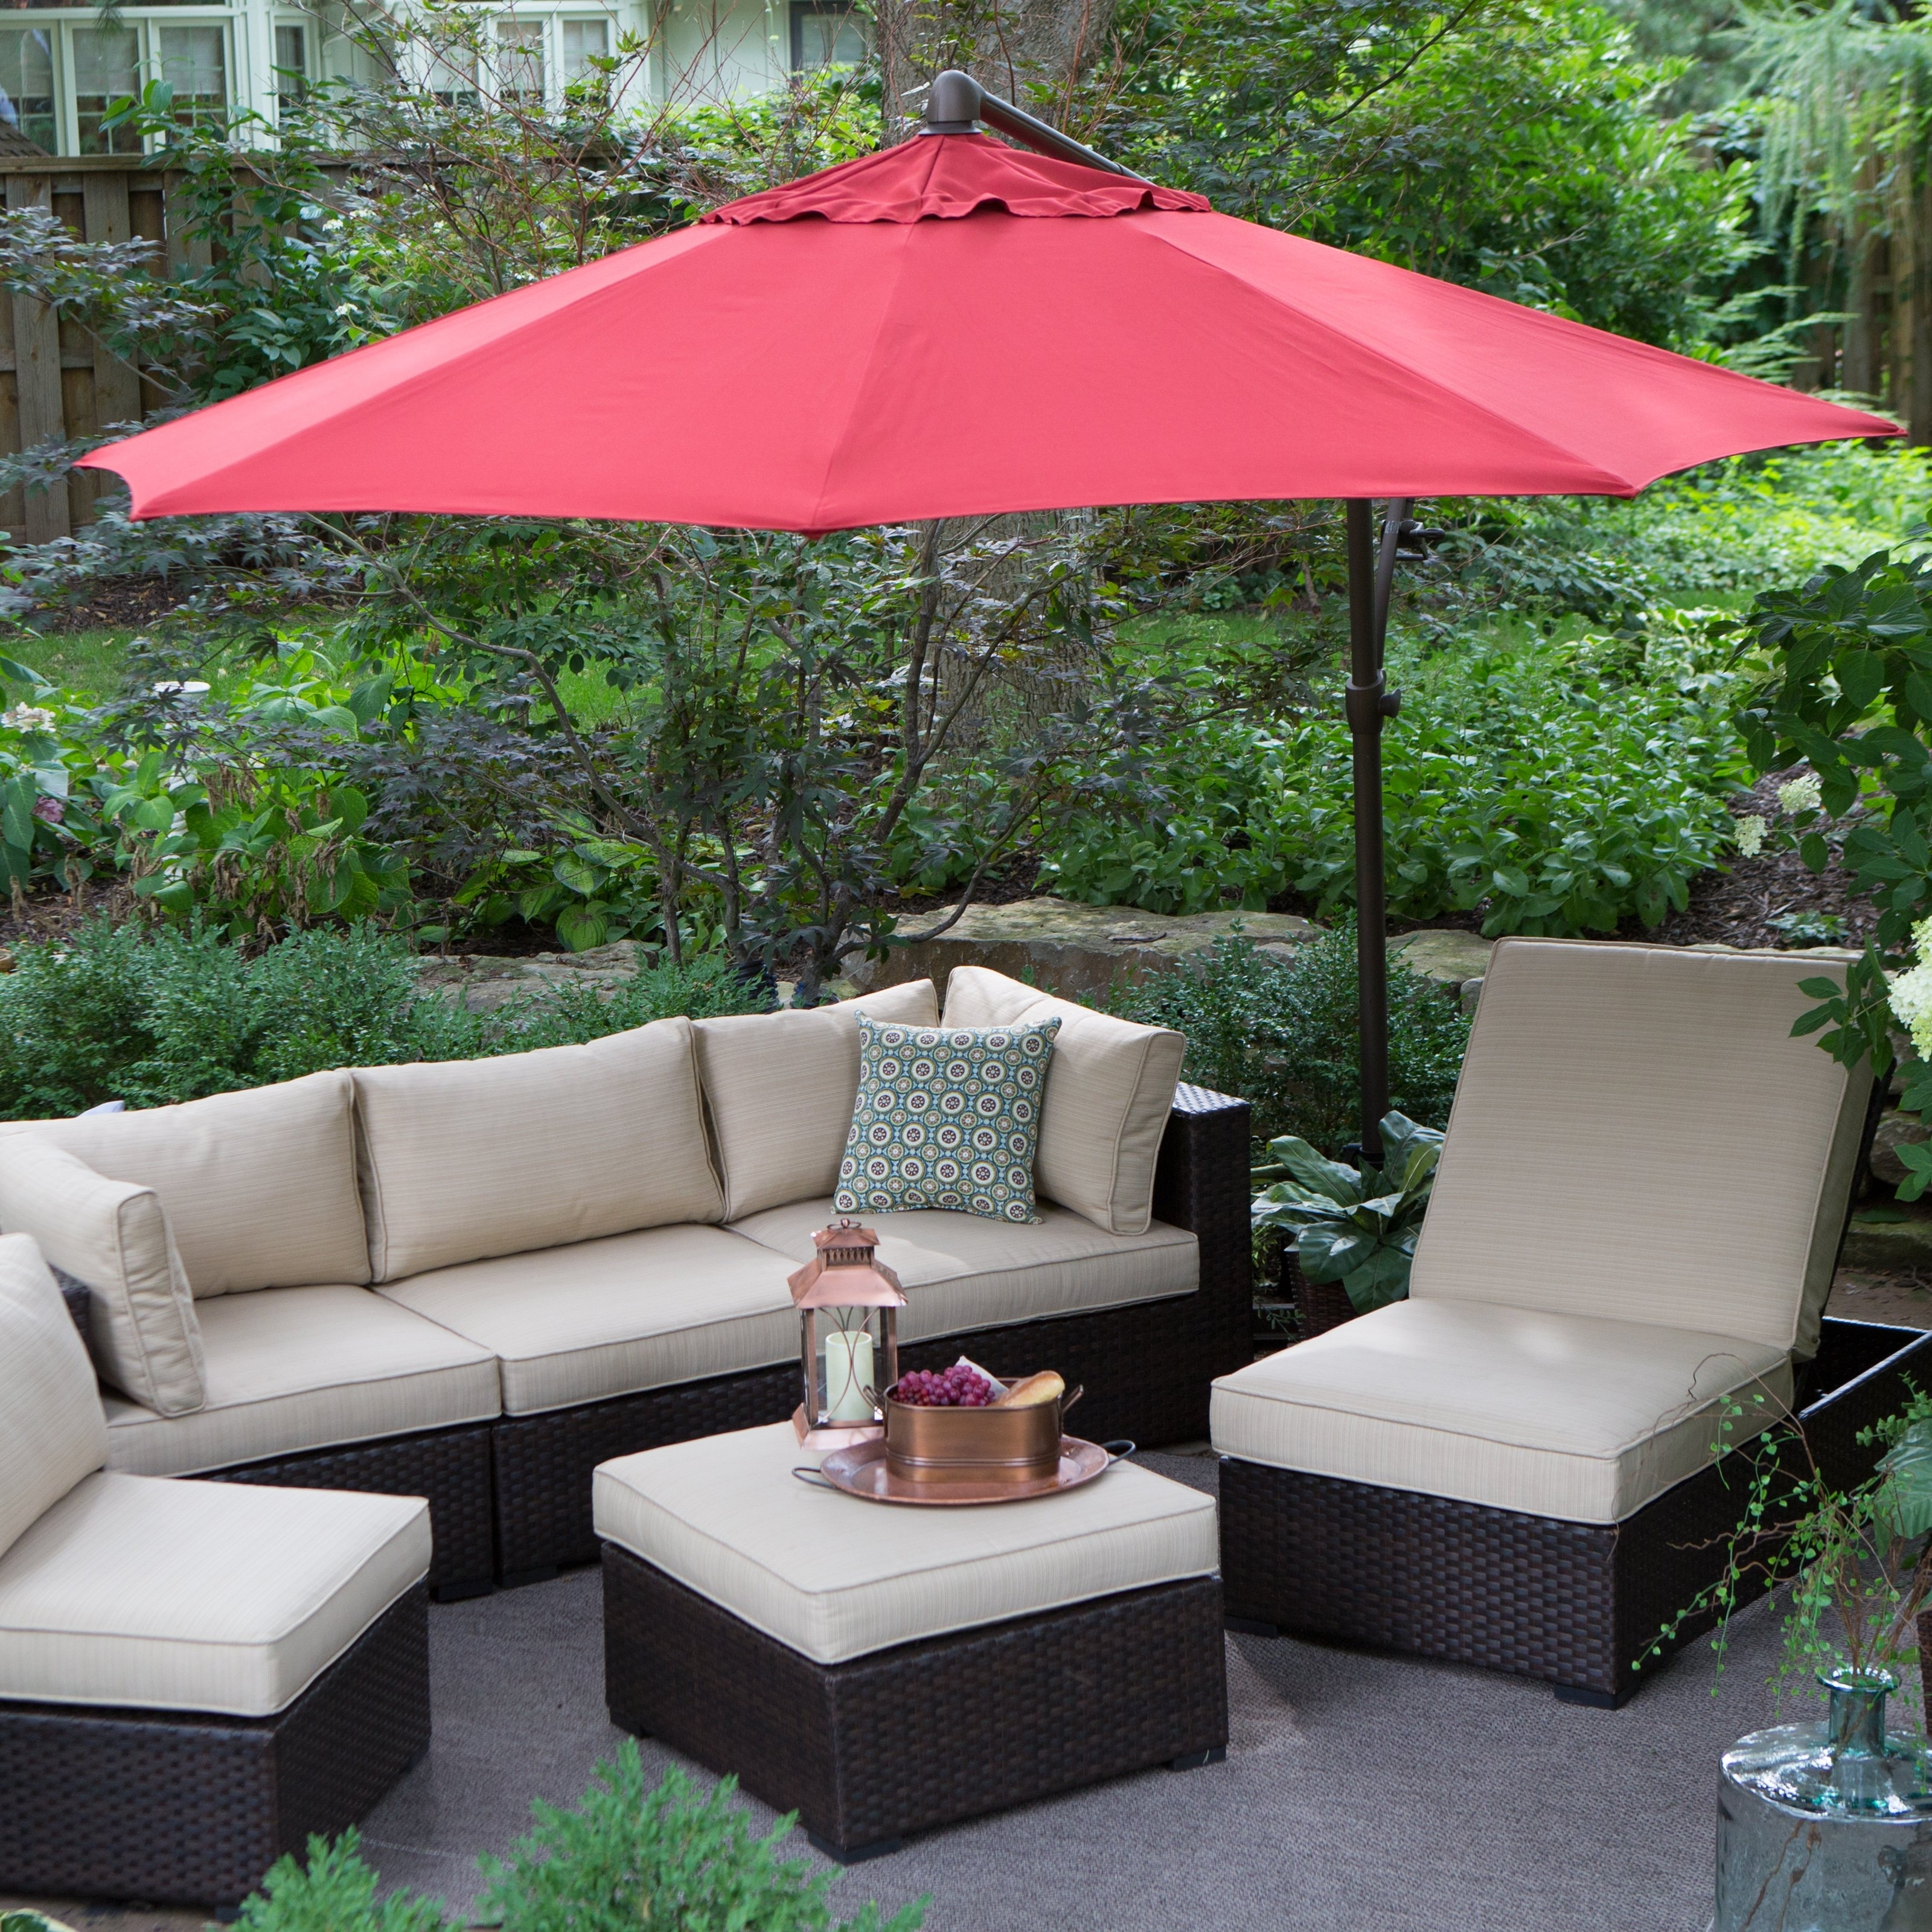 Newest Sunbrella Patio Umbrellas At Walmart Intended For Treasure Garden 10 Ft. Obravia Cantilever Octagon Offset Patio (Gallery 3 of 20)